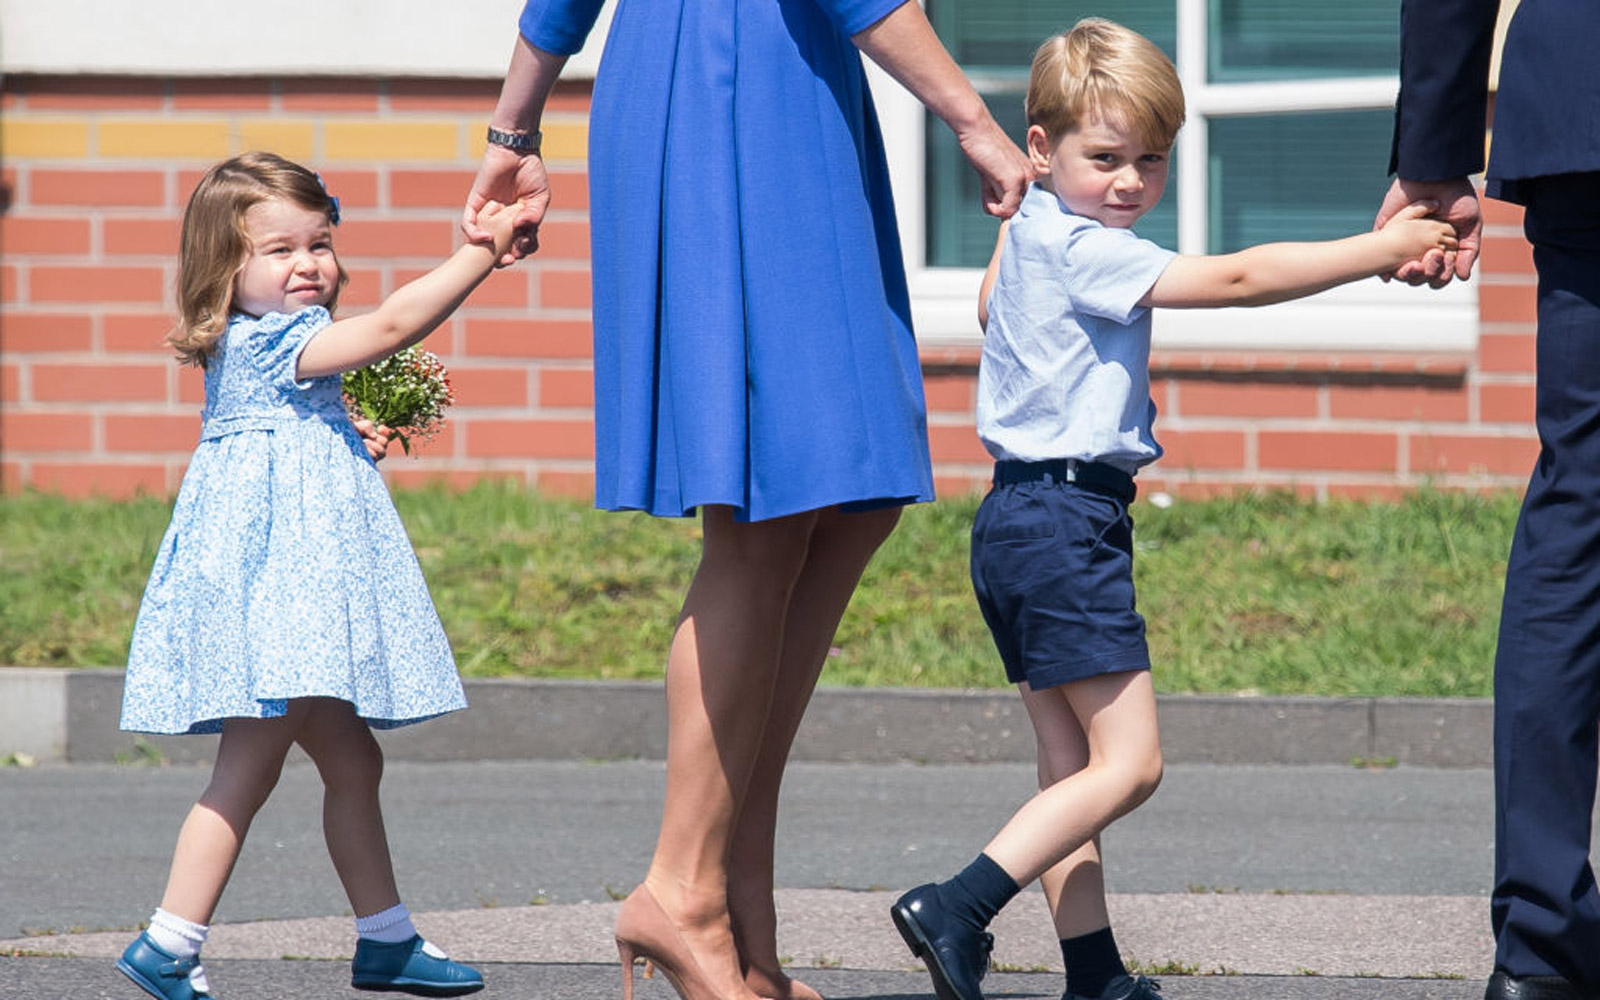 BERLIN, GERMANY - JULY 19:  Prince George of Cambridge and Princess Charlotte of Cambridge arrive at Berlin military airport during an official visit to Poland and Germany on July 19, 2017 in Berlin, Germany.  (Photo by Samir Hussein/WireImage)